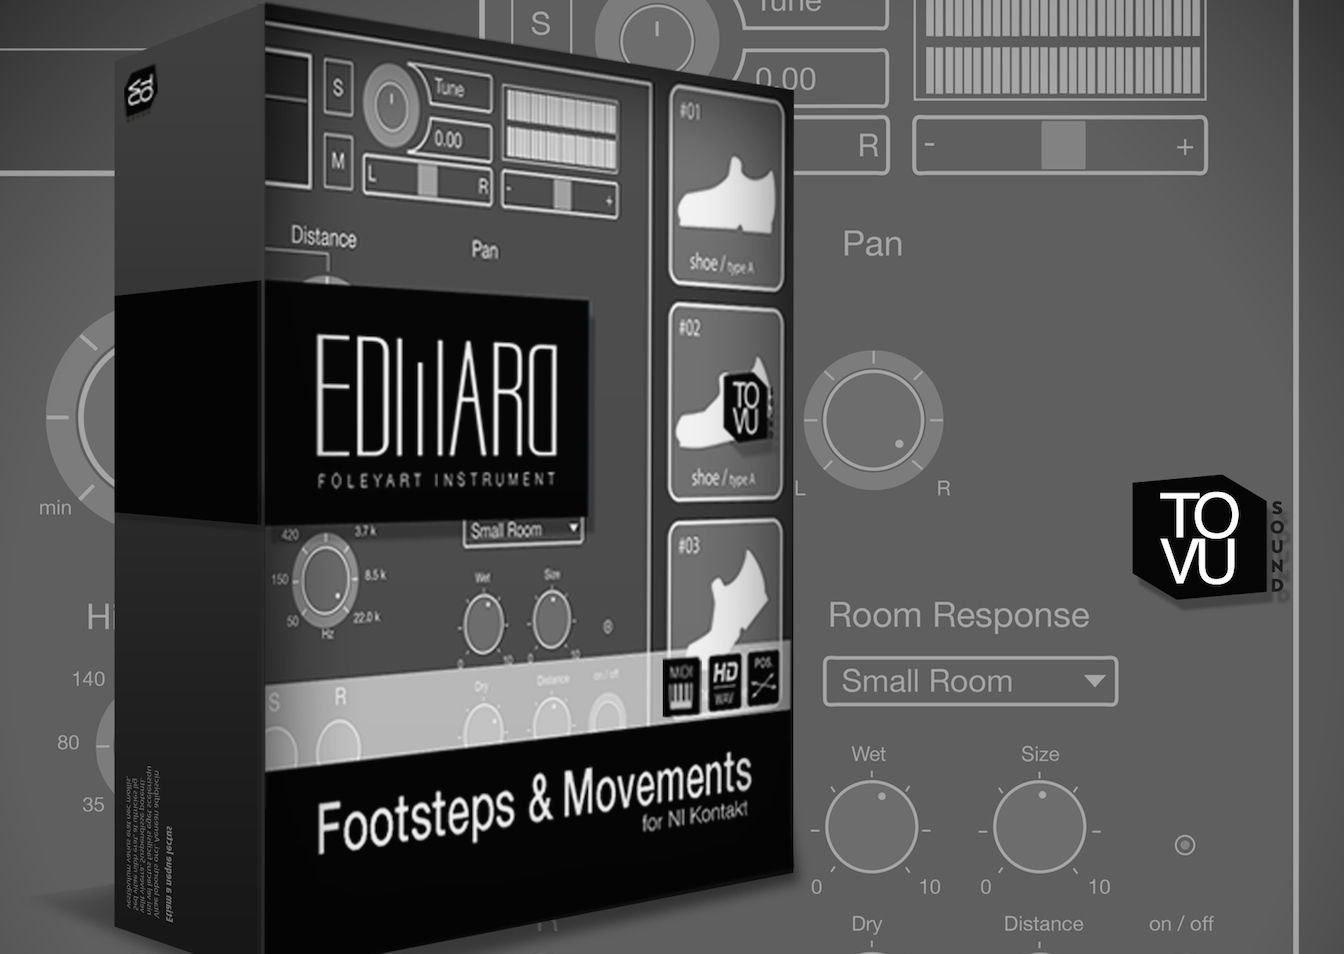 New Software Review: Edward Ultimate Foleyart Instrument from Tovusound